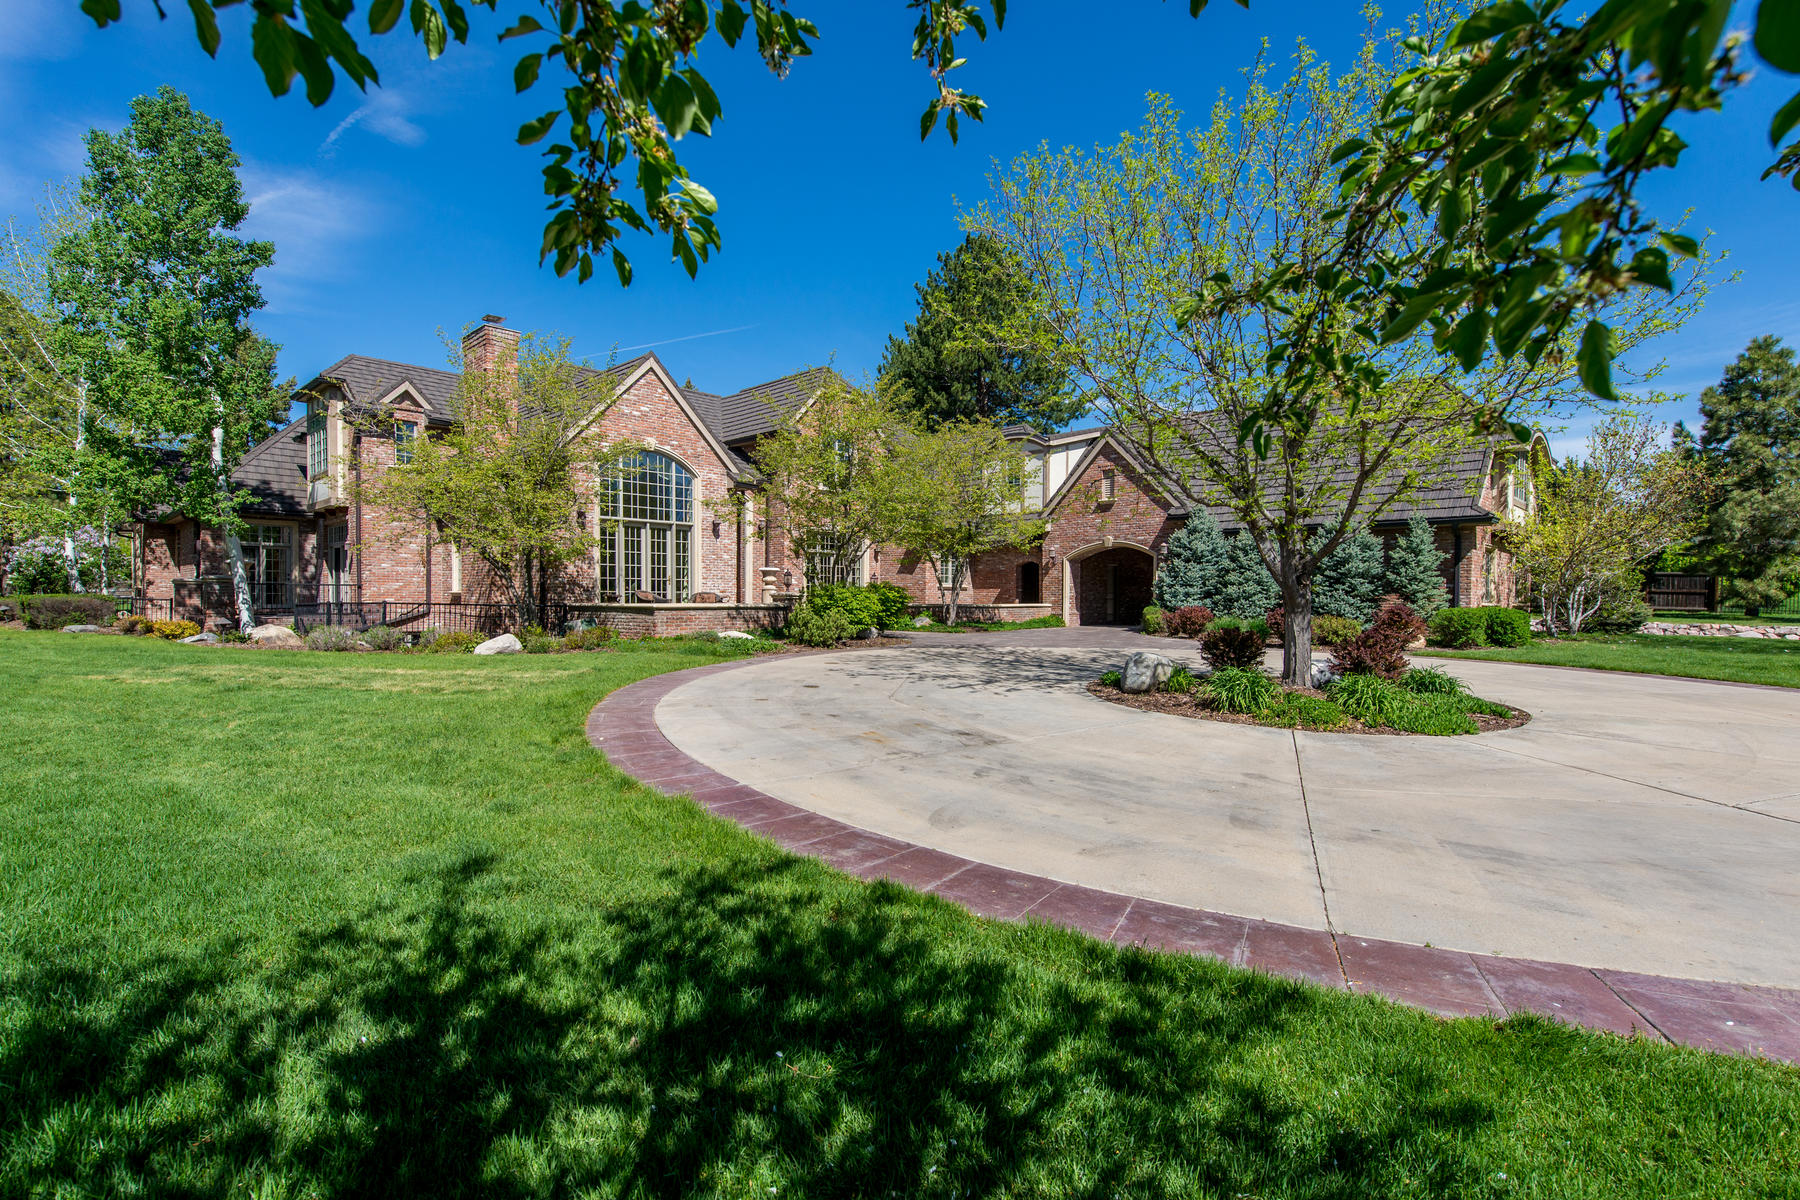 Casa Unifamiliar por un Venta en The Only Property of It's Kind in Cherry Hills Village 7 Vista Rd Cherry Hills Village, Colorado 80113 Estados Unidos